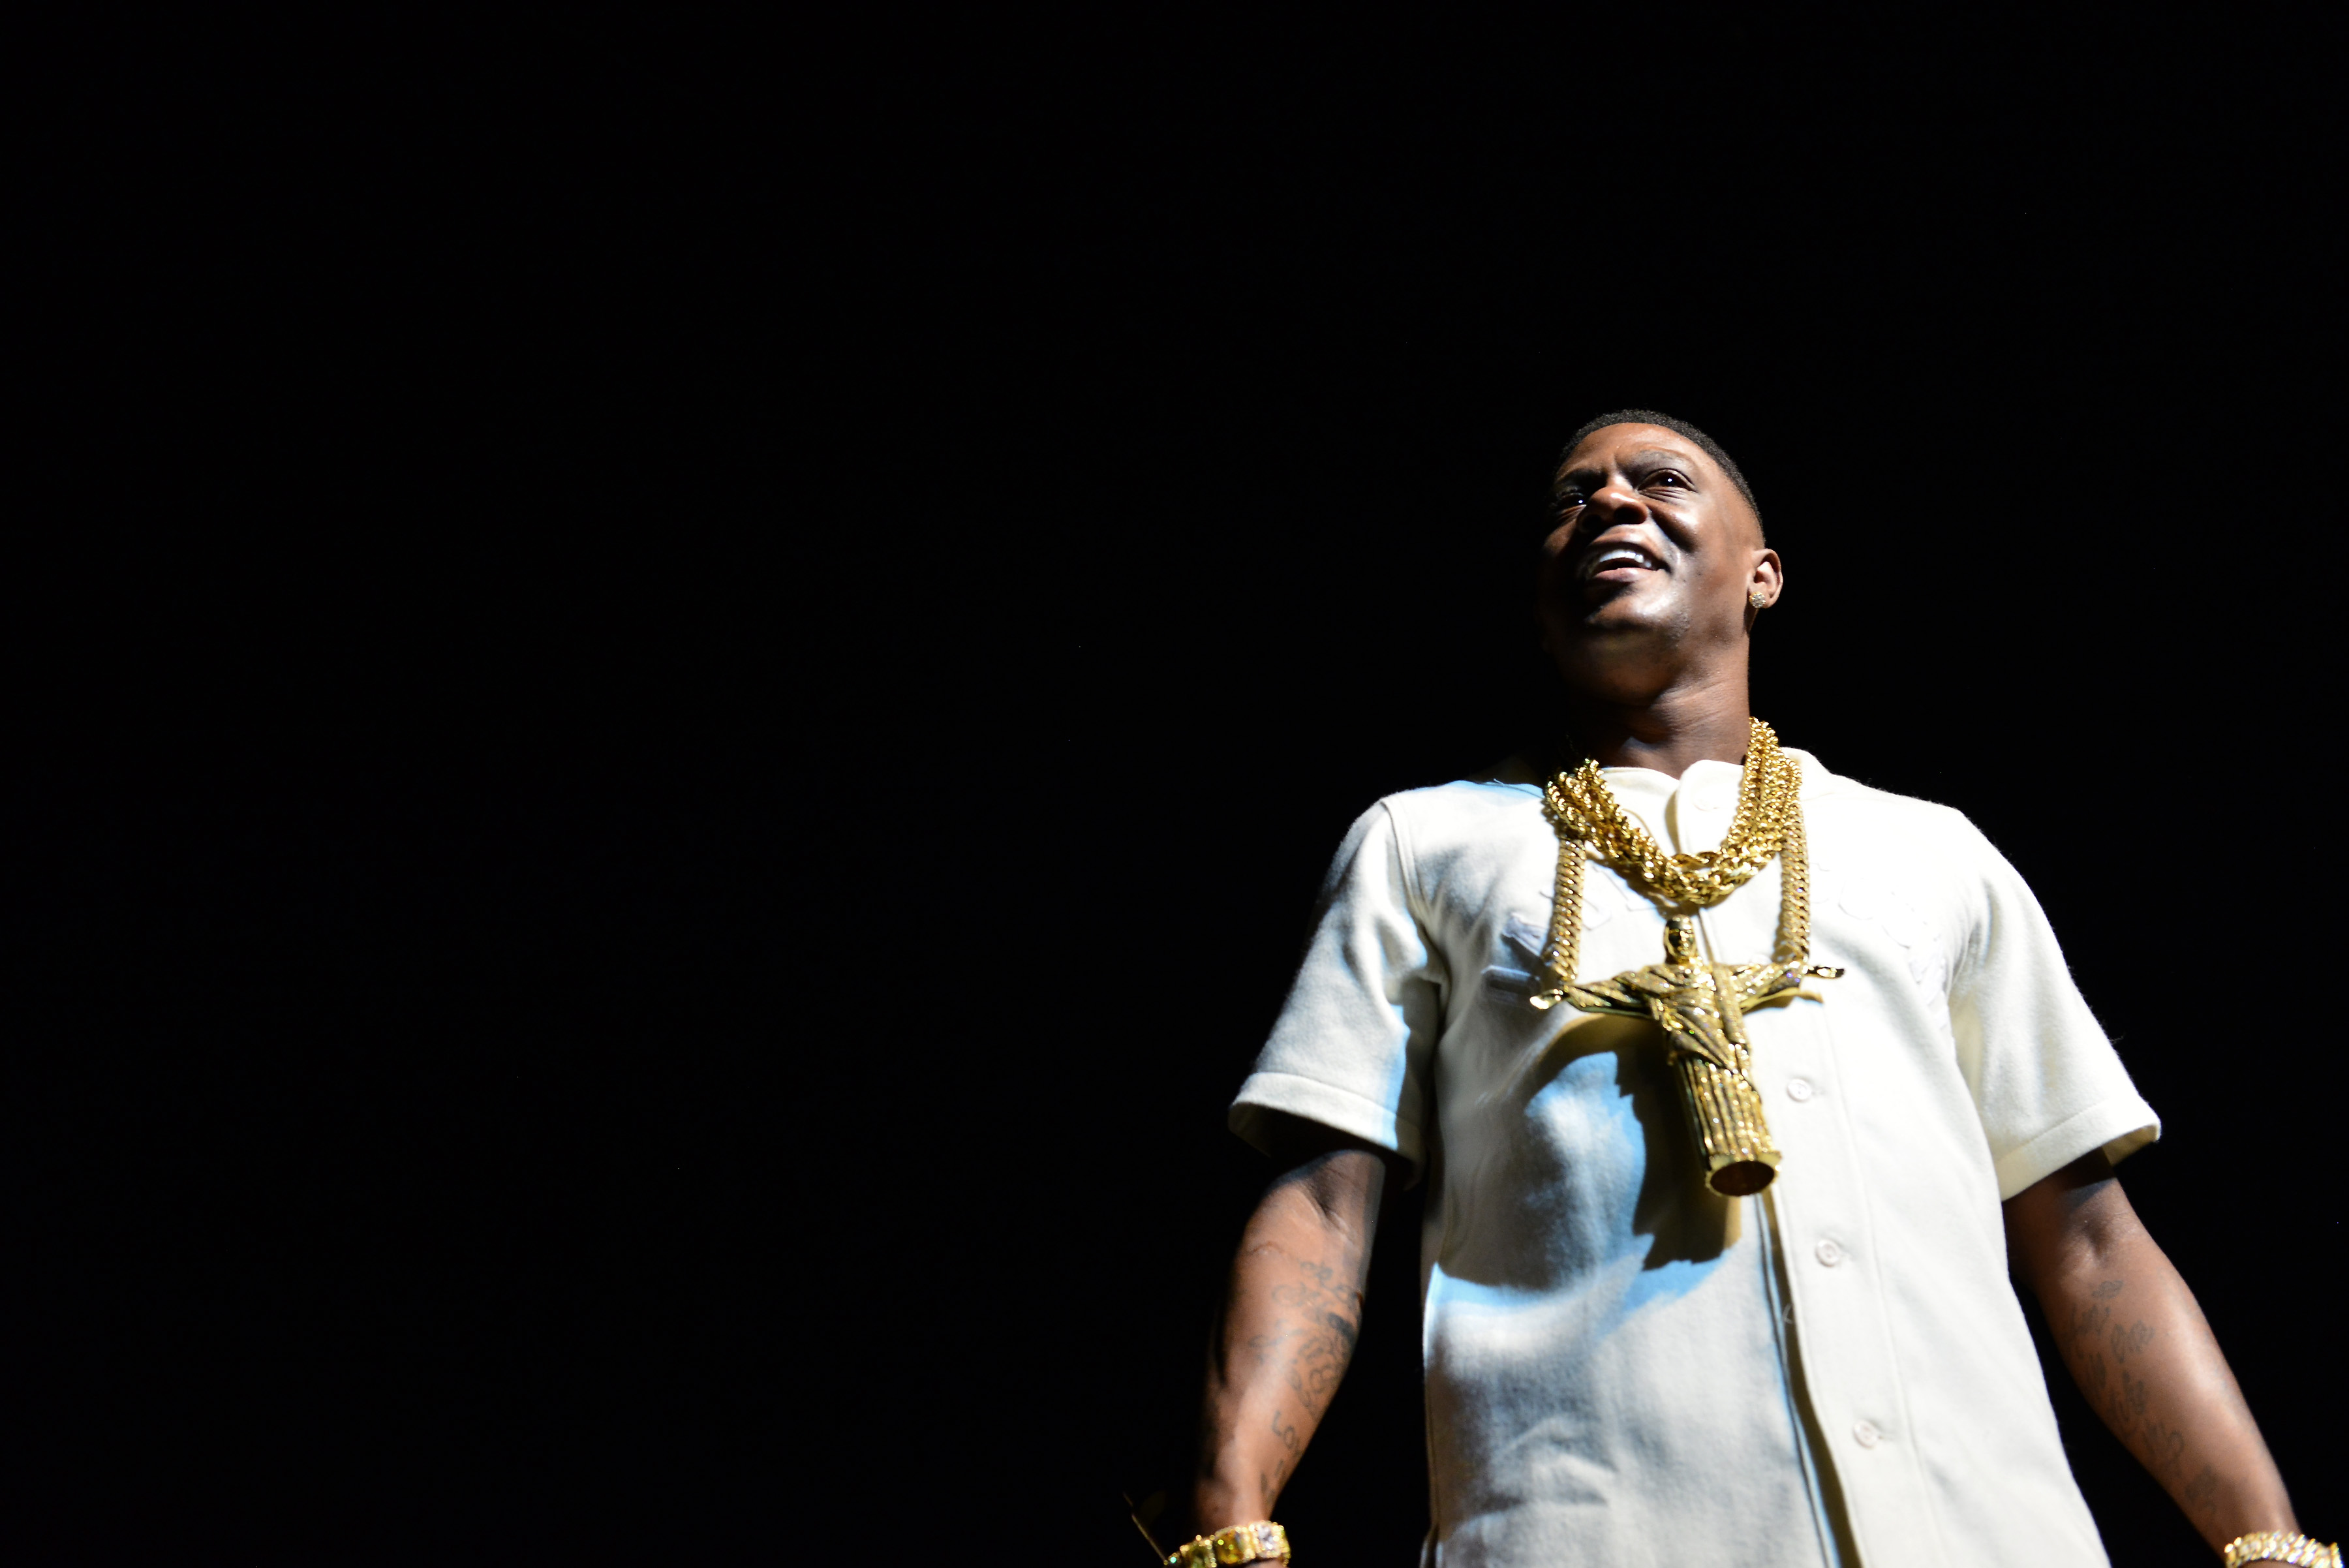 Kings Of The Streets Tour with Lil' Boosie And Plies